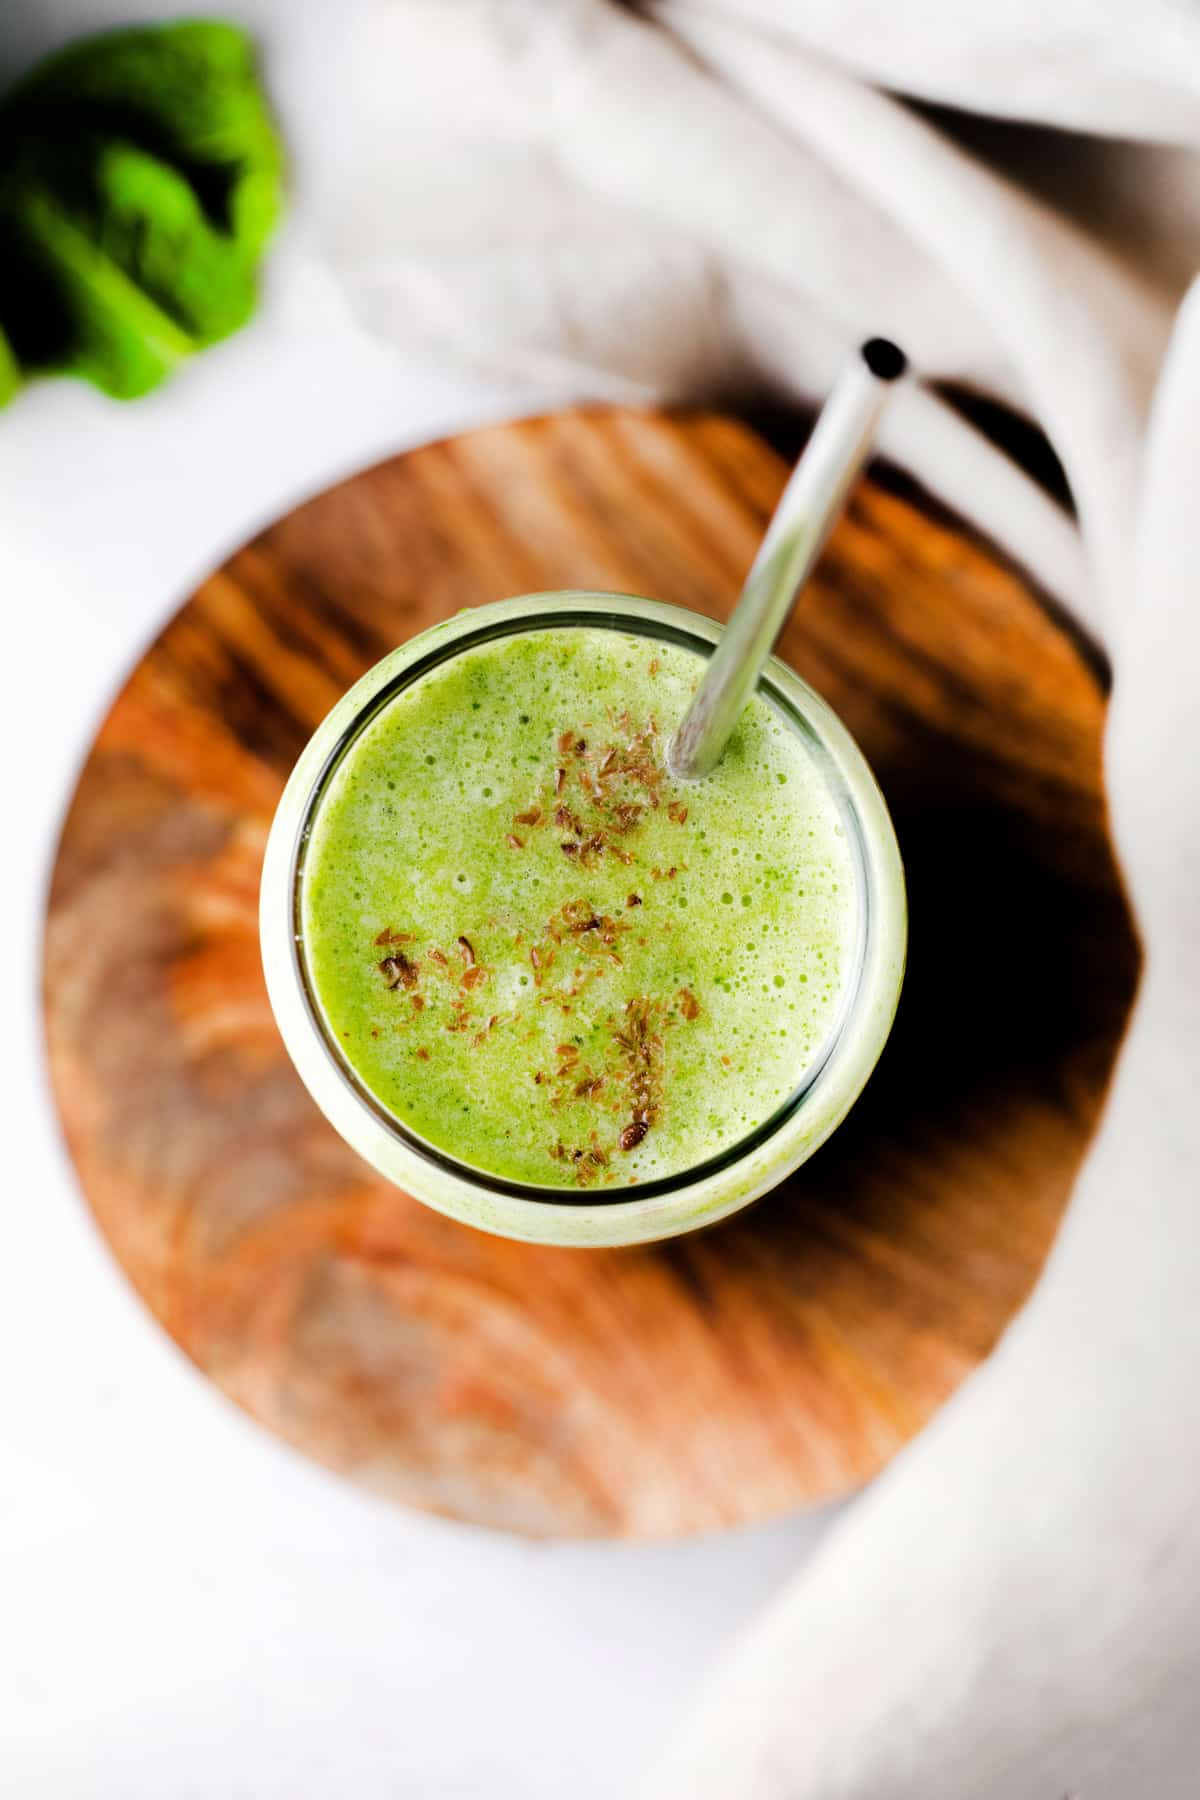 Overhead photos of smoothie with straw and cinnamon